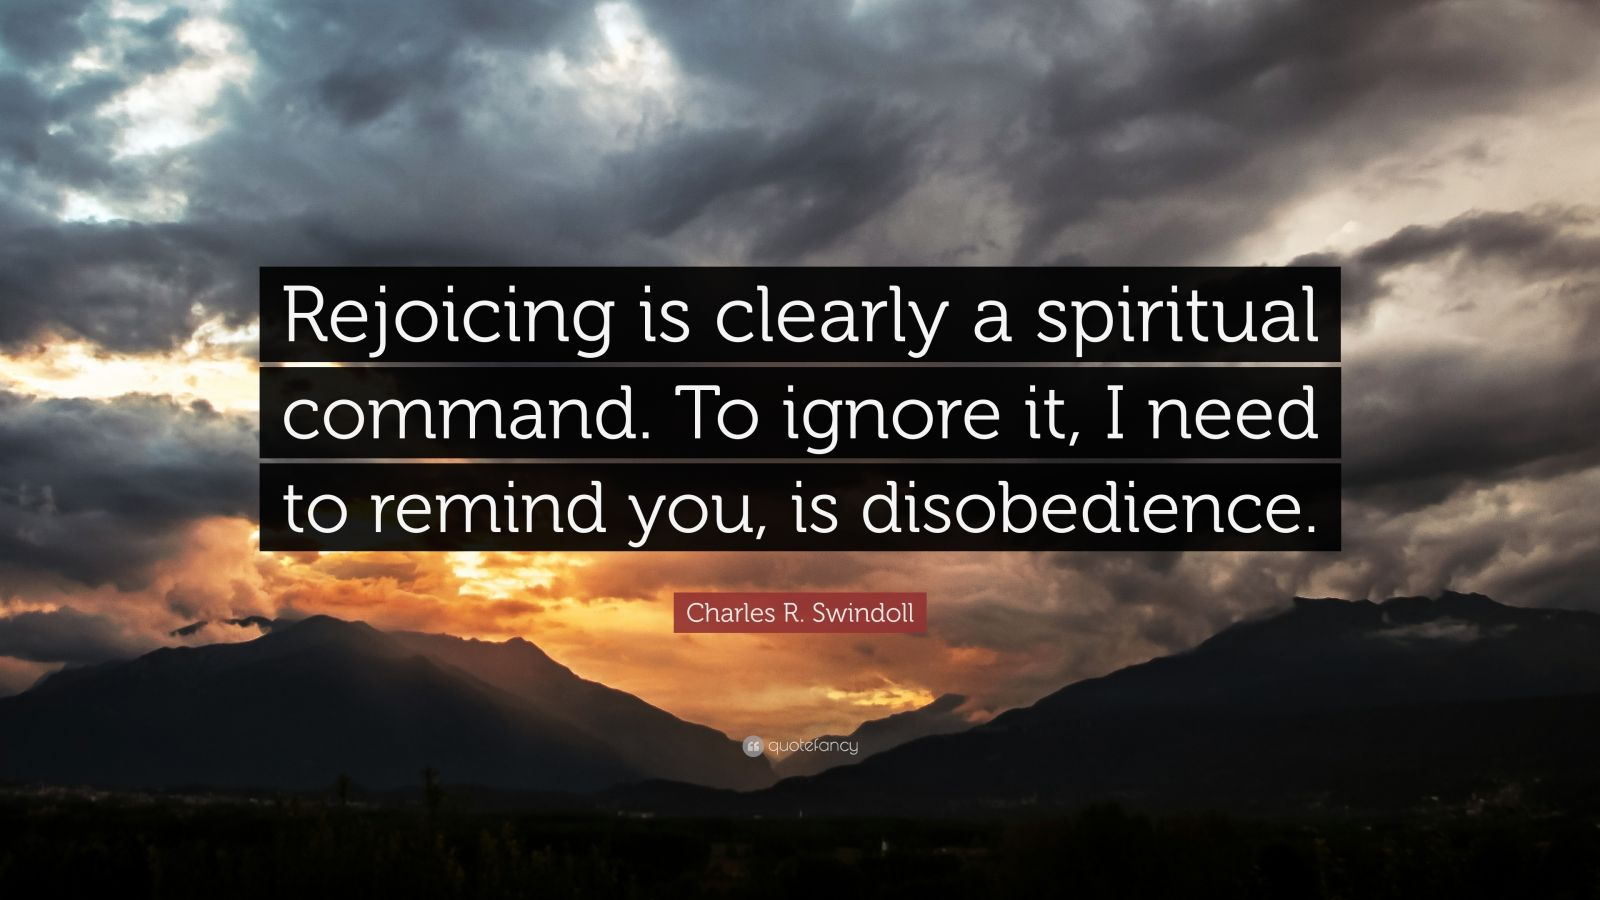 """Charles R. Swindoll Quote: """"Rejoicing is clearly a spiritual command. To ignore it, I need to remind you, is disobedience."""""""